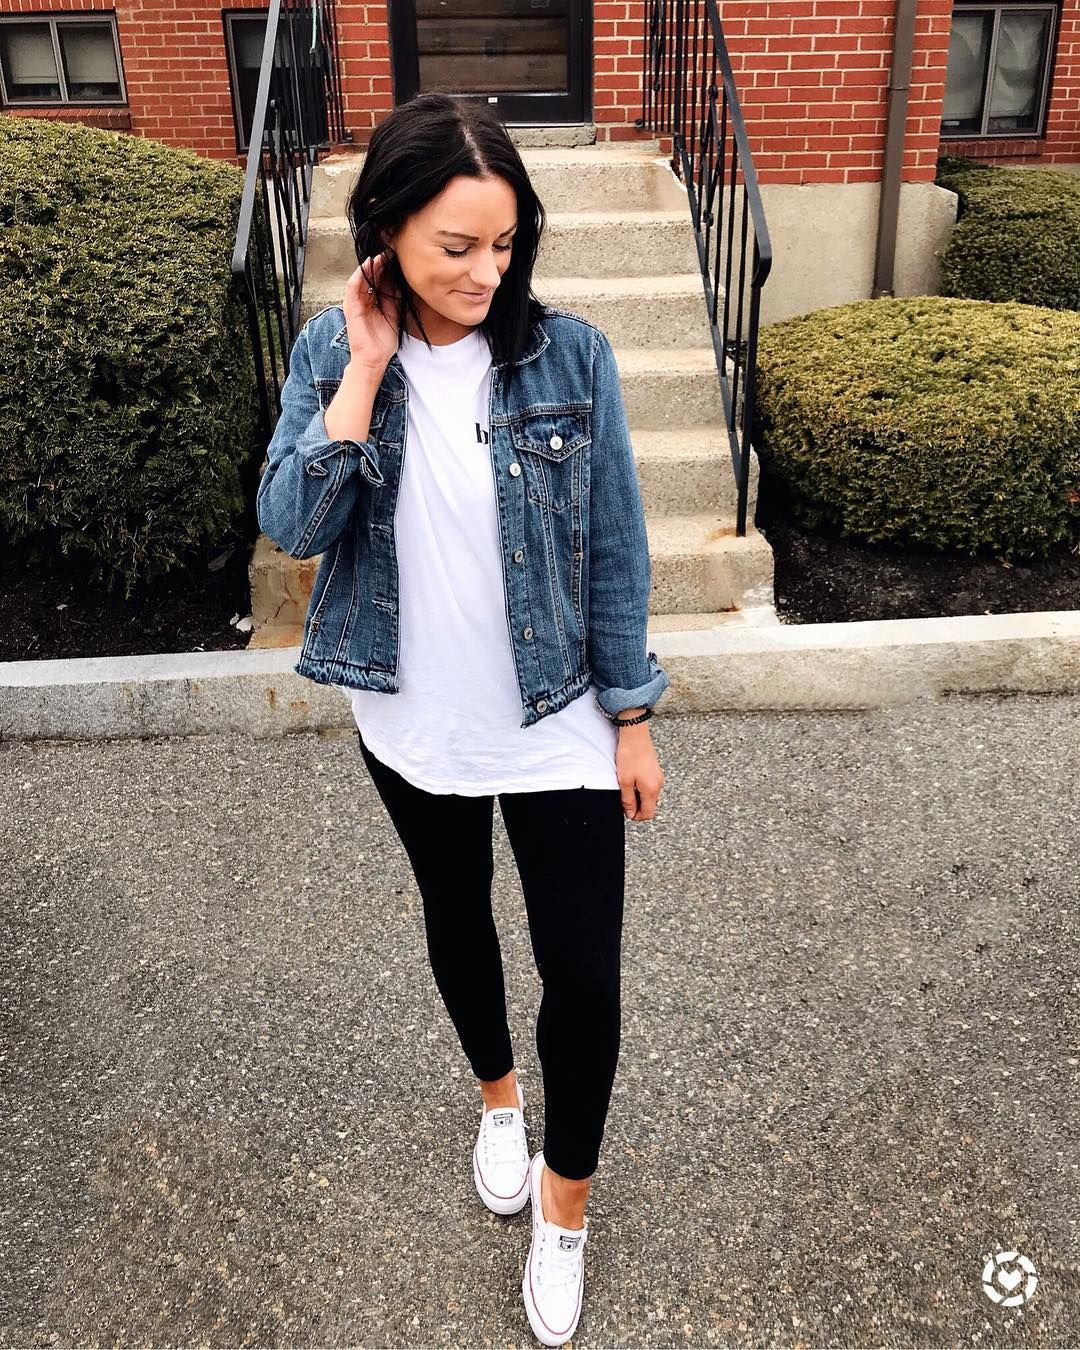 Ig Emjacquelyn Converse Outfit Spring Outfit Cute Outfit Jean Jacket Casual Outfit Legg Converse Outfit Spring Outfits With Leggings Outfits With Converse [ 1350 x 1080 Pixel ]